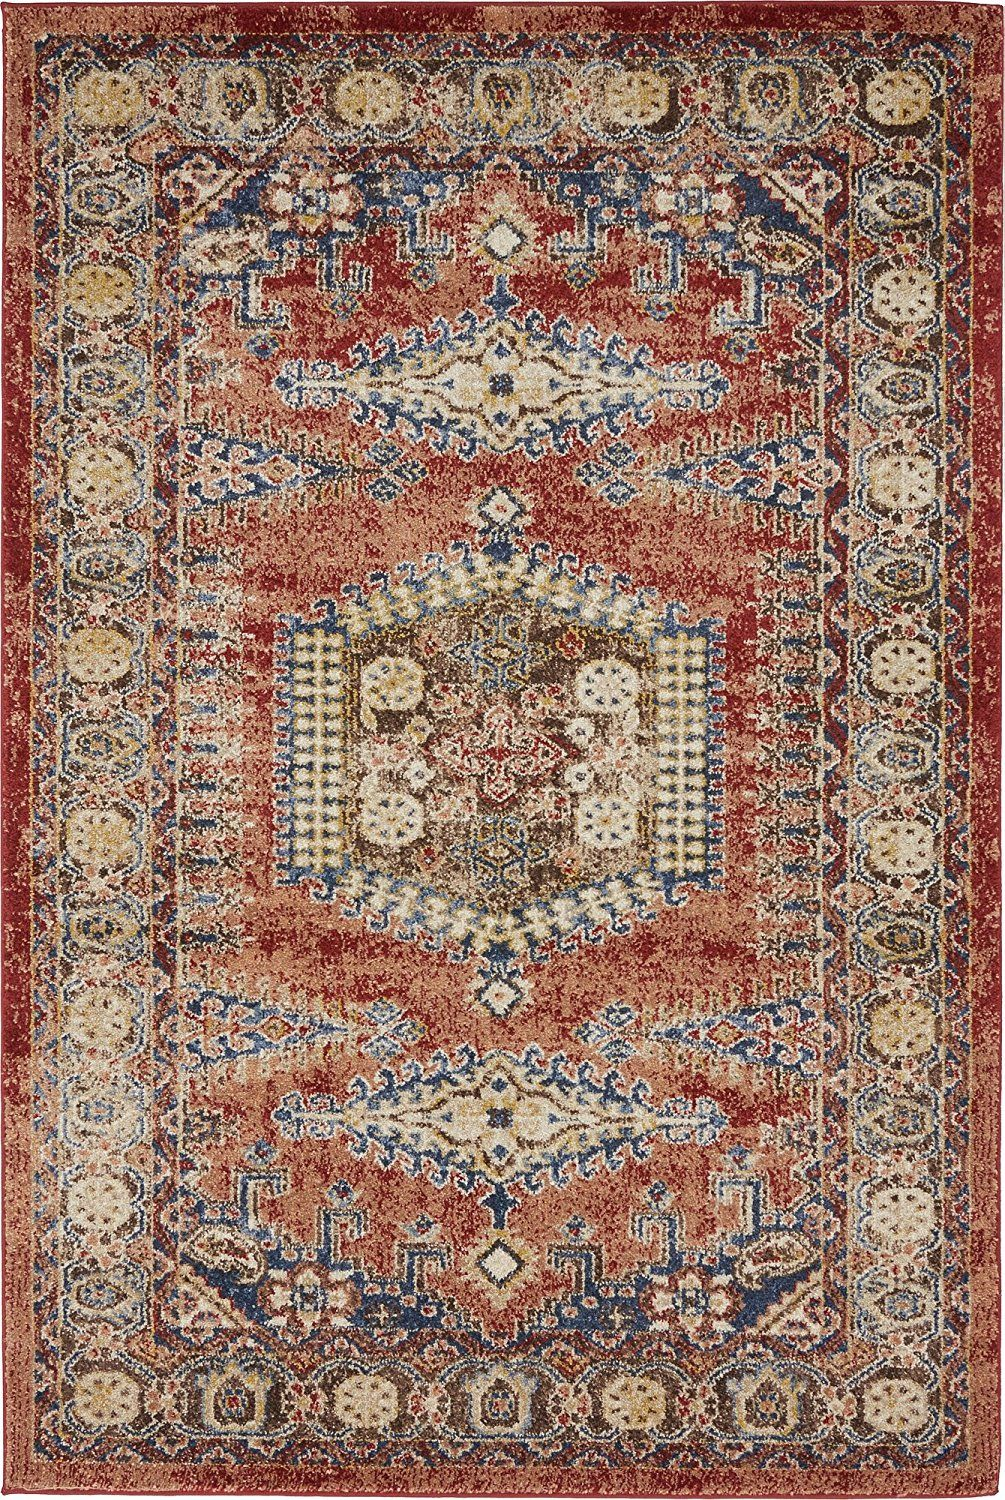 Traditional Persian Rugs Vintage Design